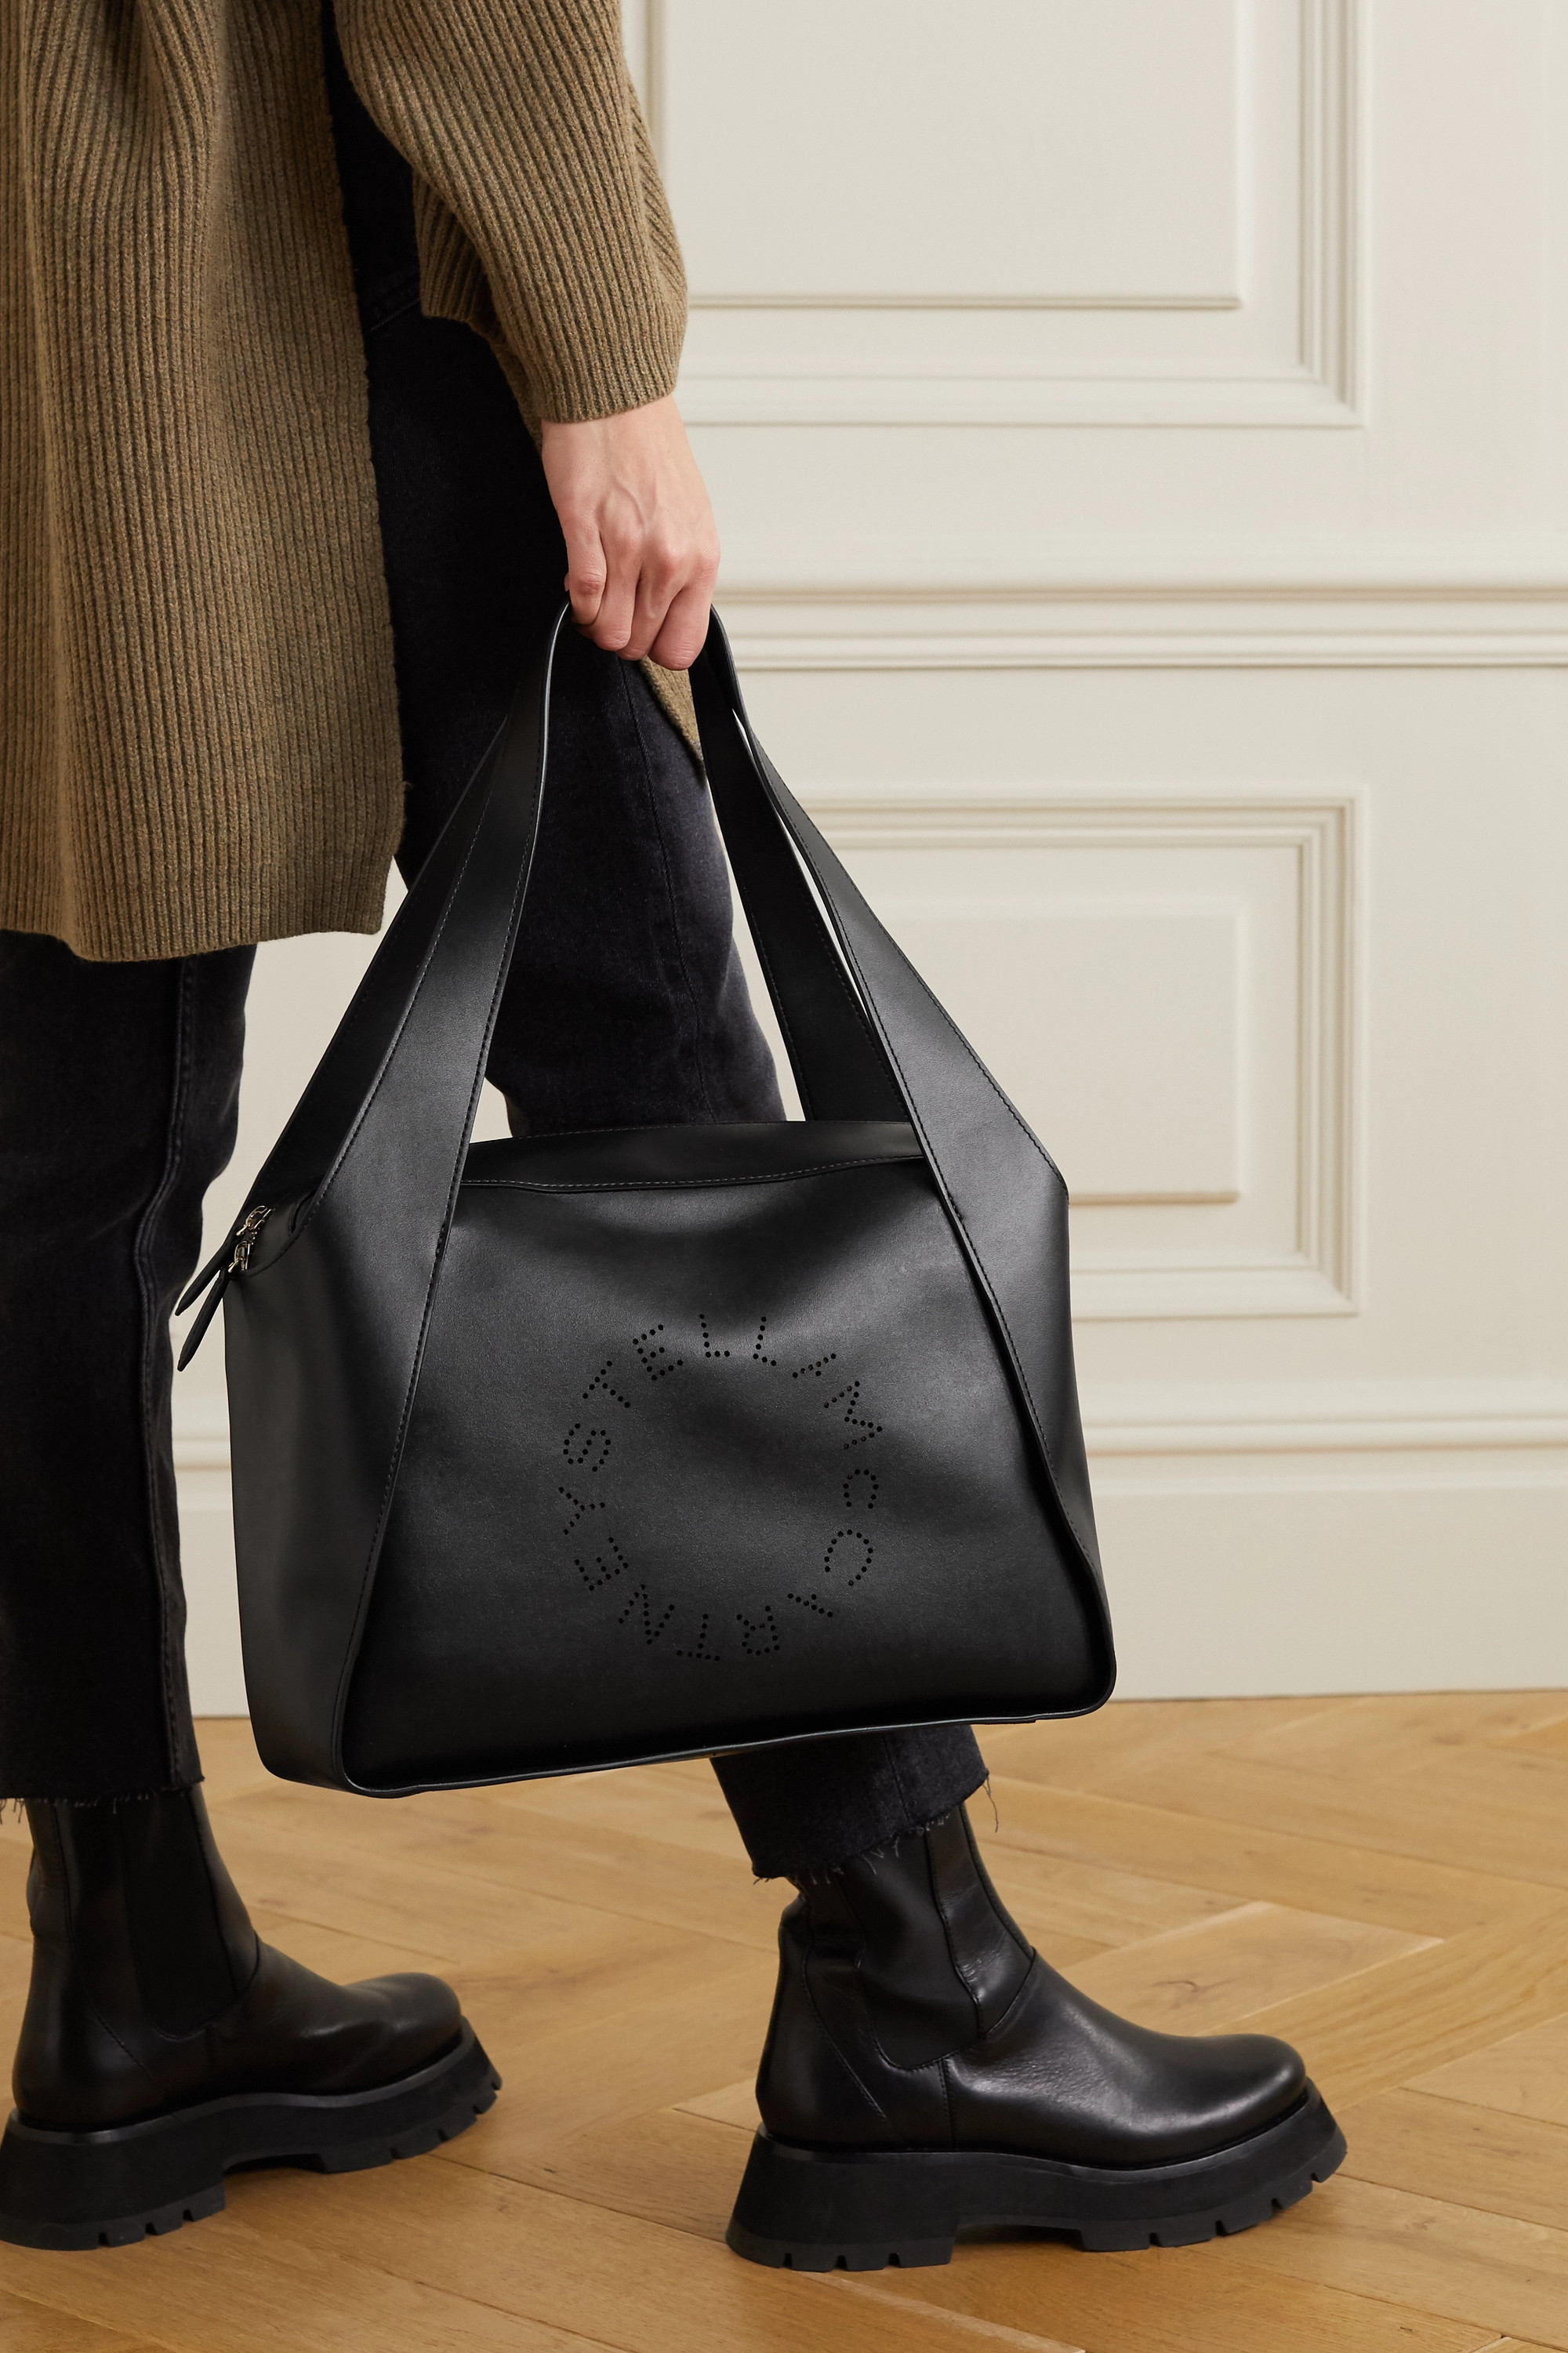 Stella McCartney Sac à main en cuir végétarien à perforations